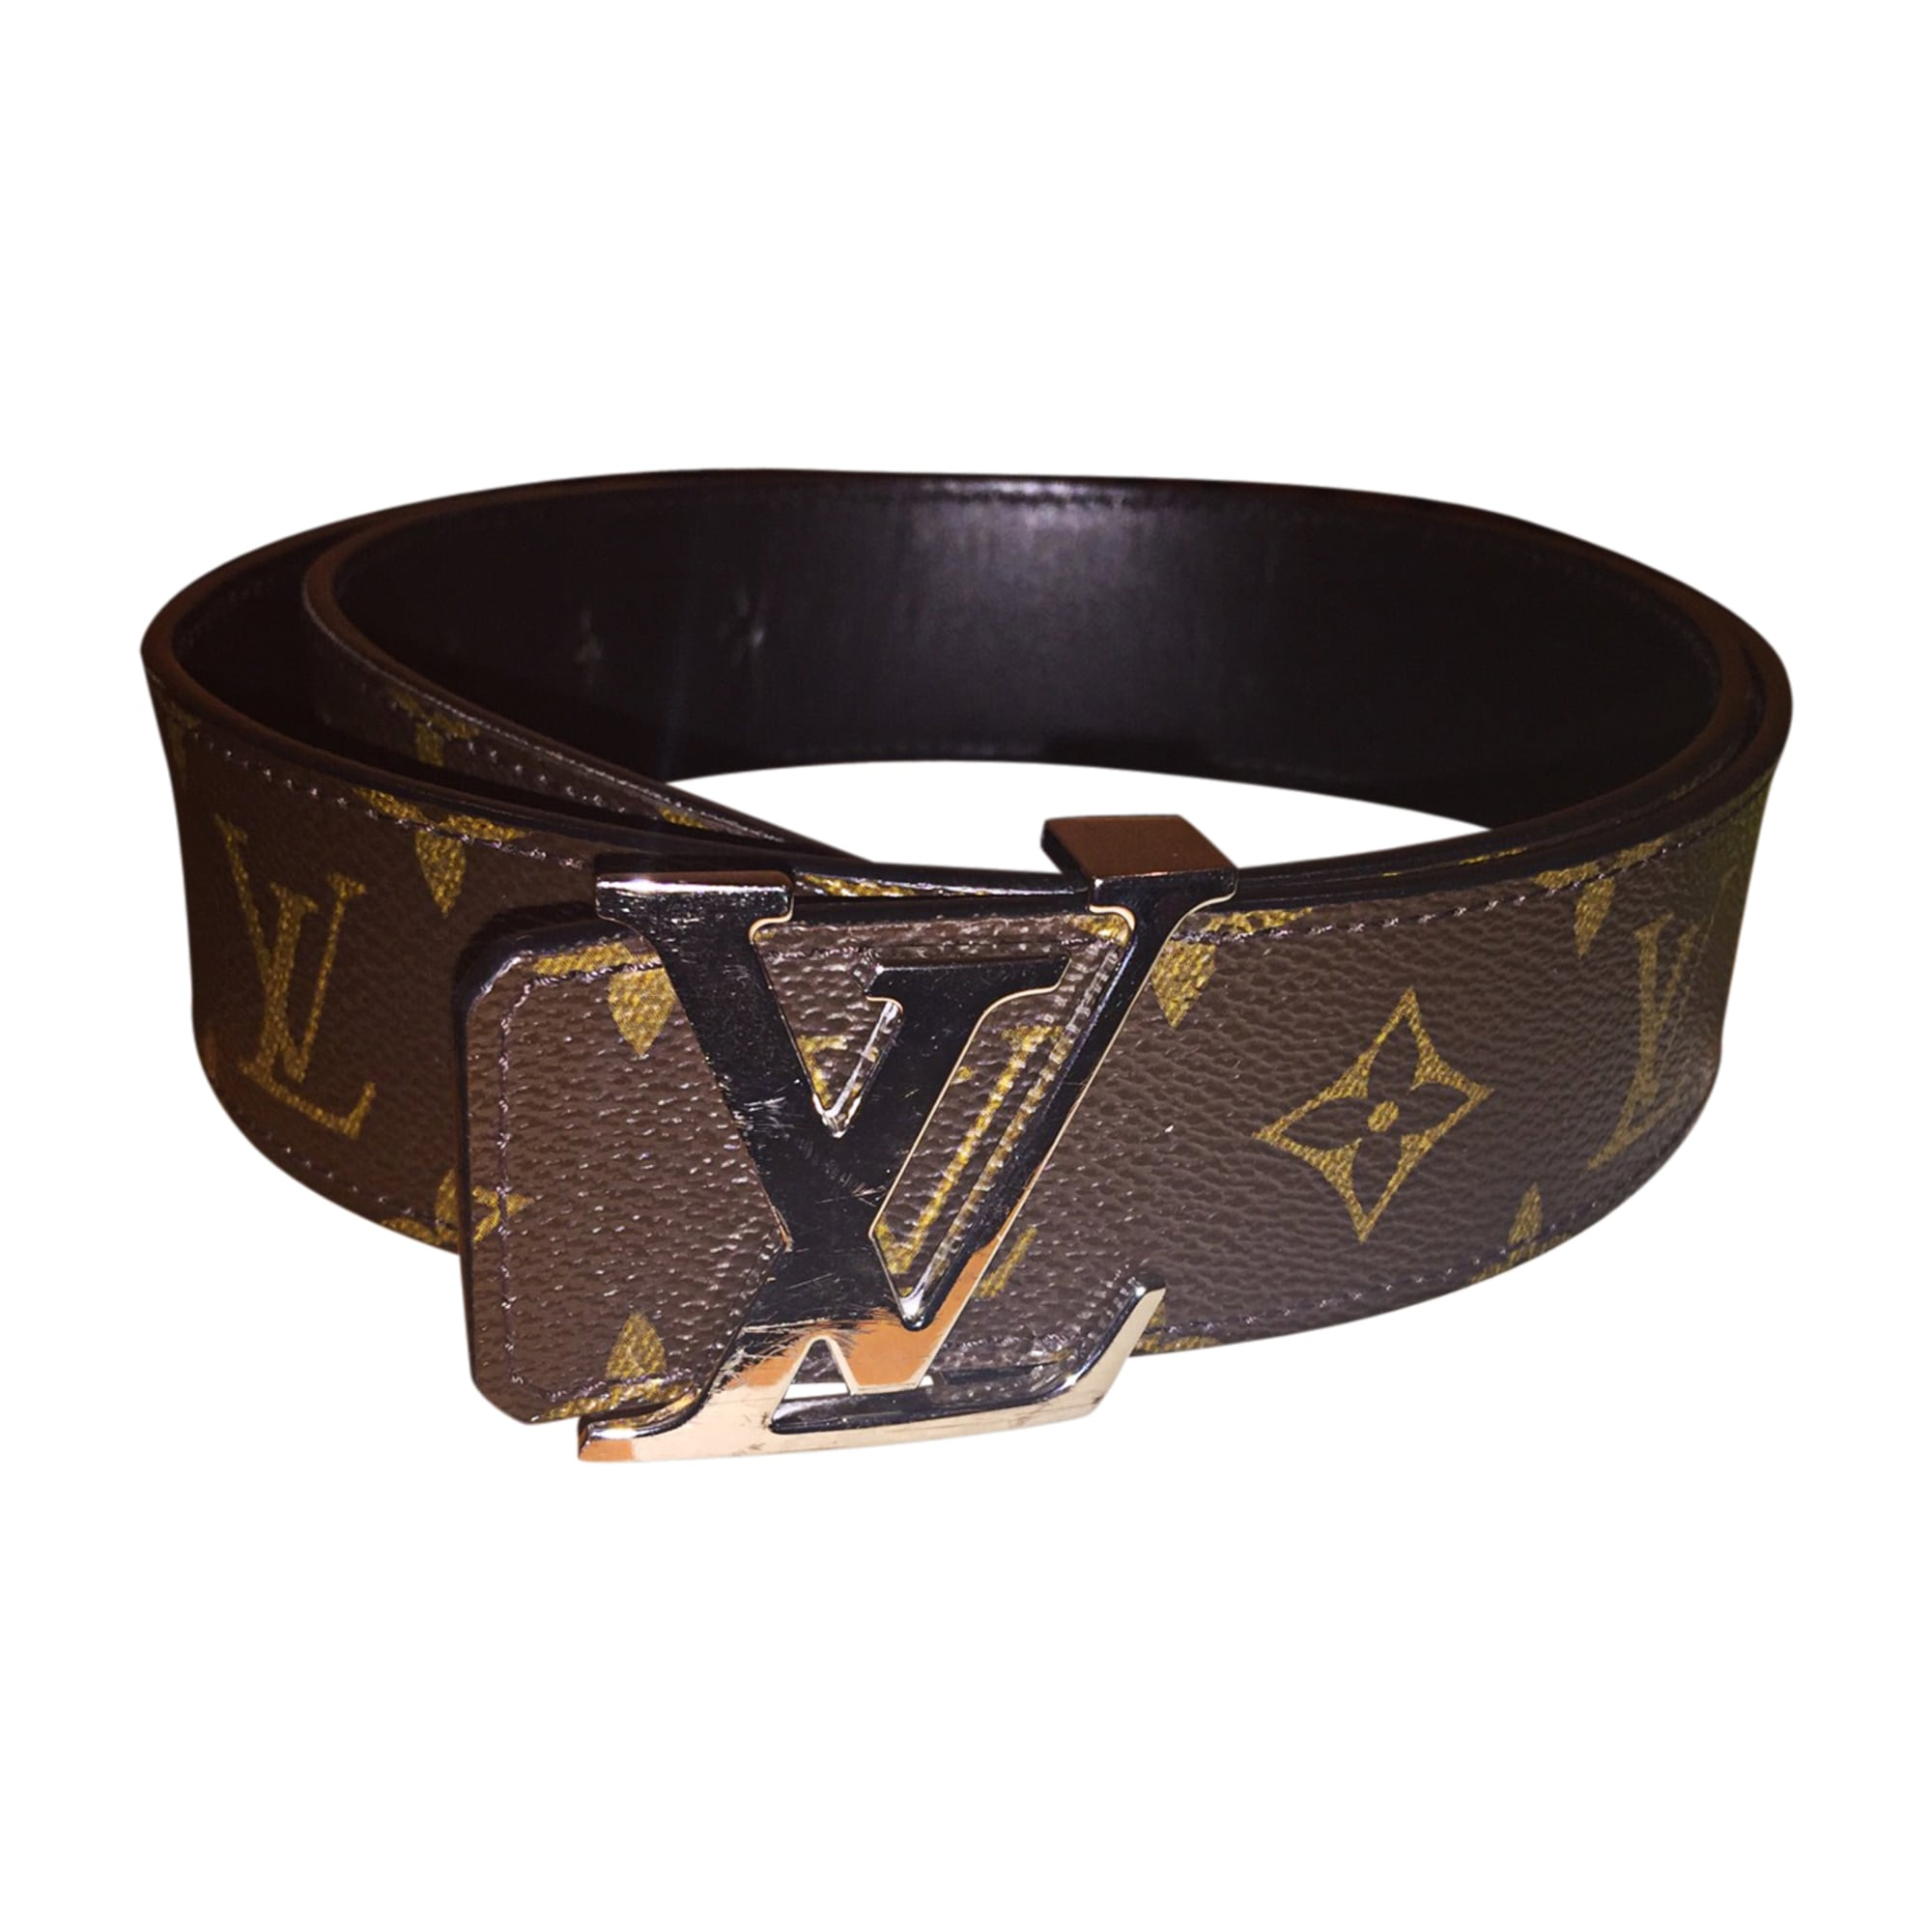 Ceinture large LOUIS VUITTON 90 marron vendu par Cbec888 - 7656342 6ef06da09ca